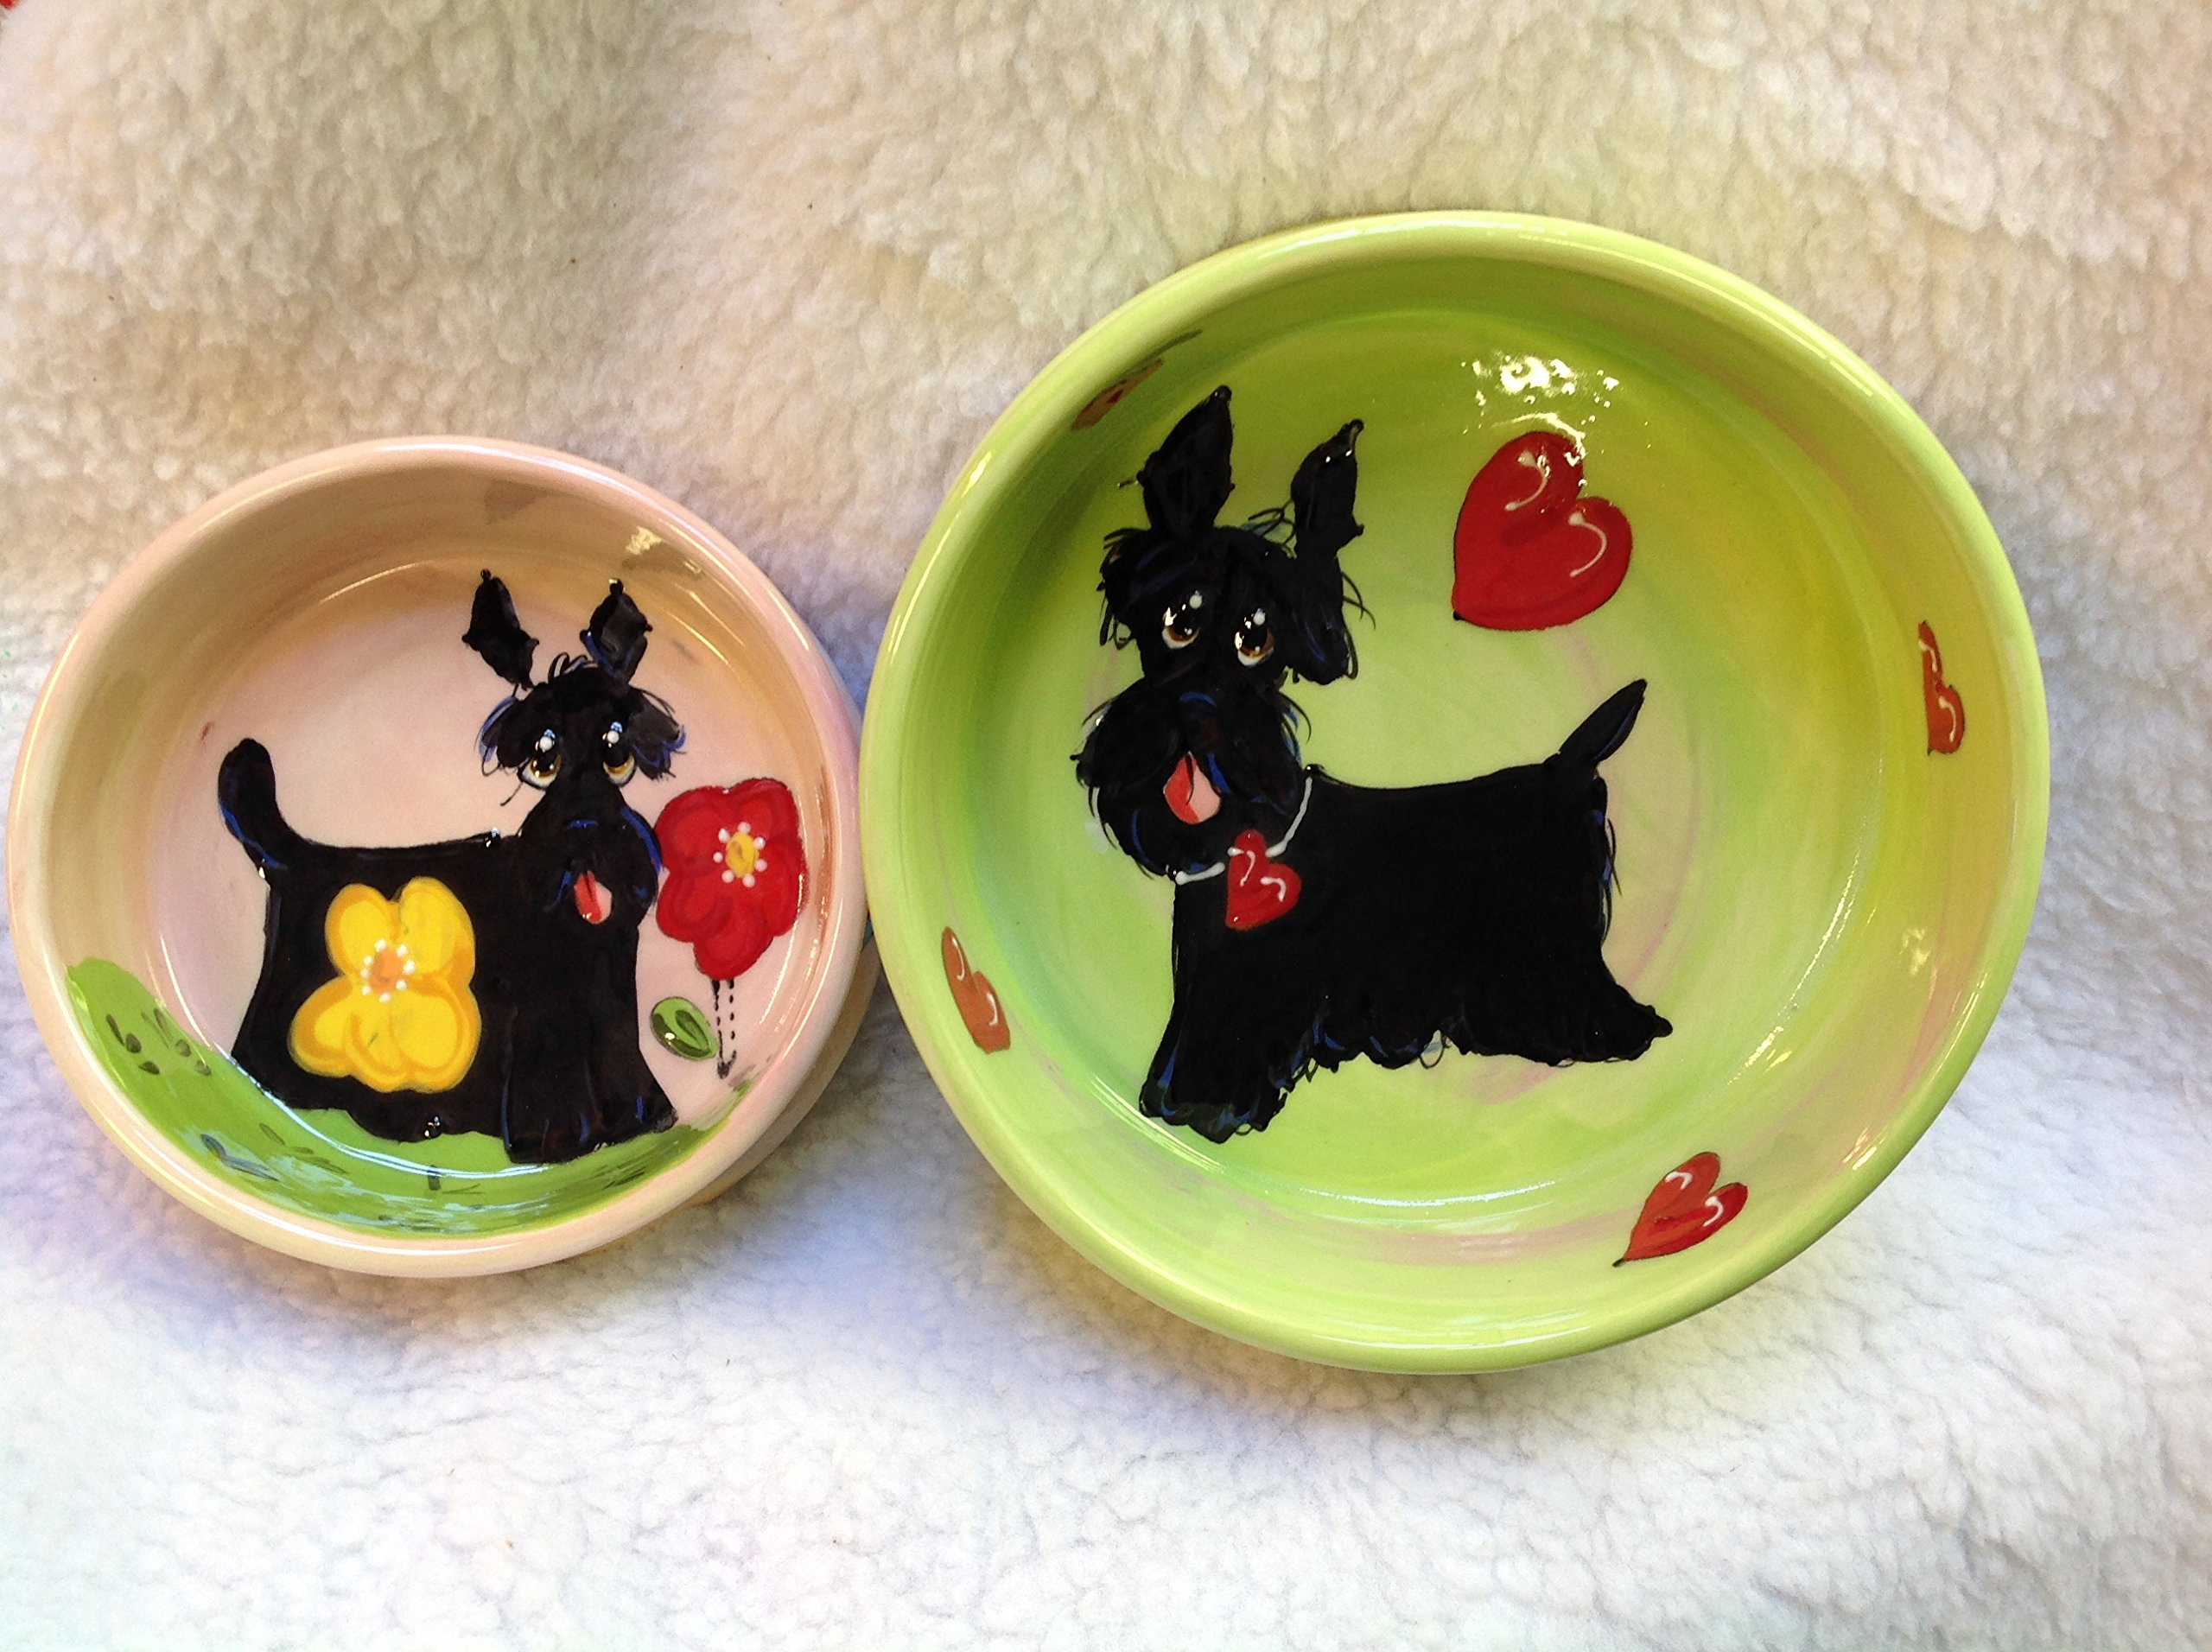 Scottish Terrier 8''/6'' Pet Bowls for Food/Water. Personalized at no Charge. Signed by Artist, Debby Carman.